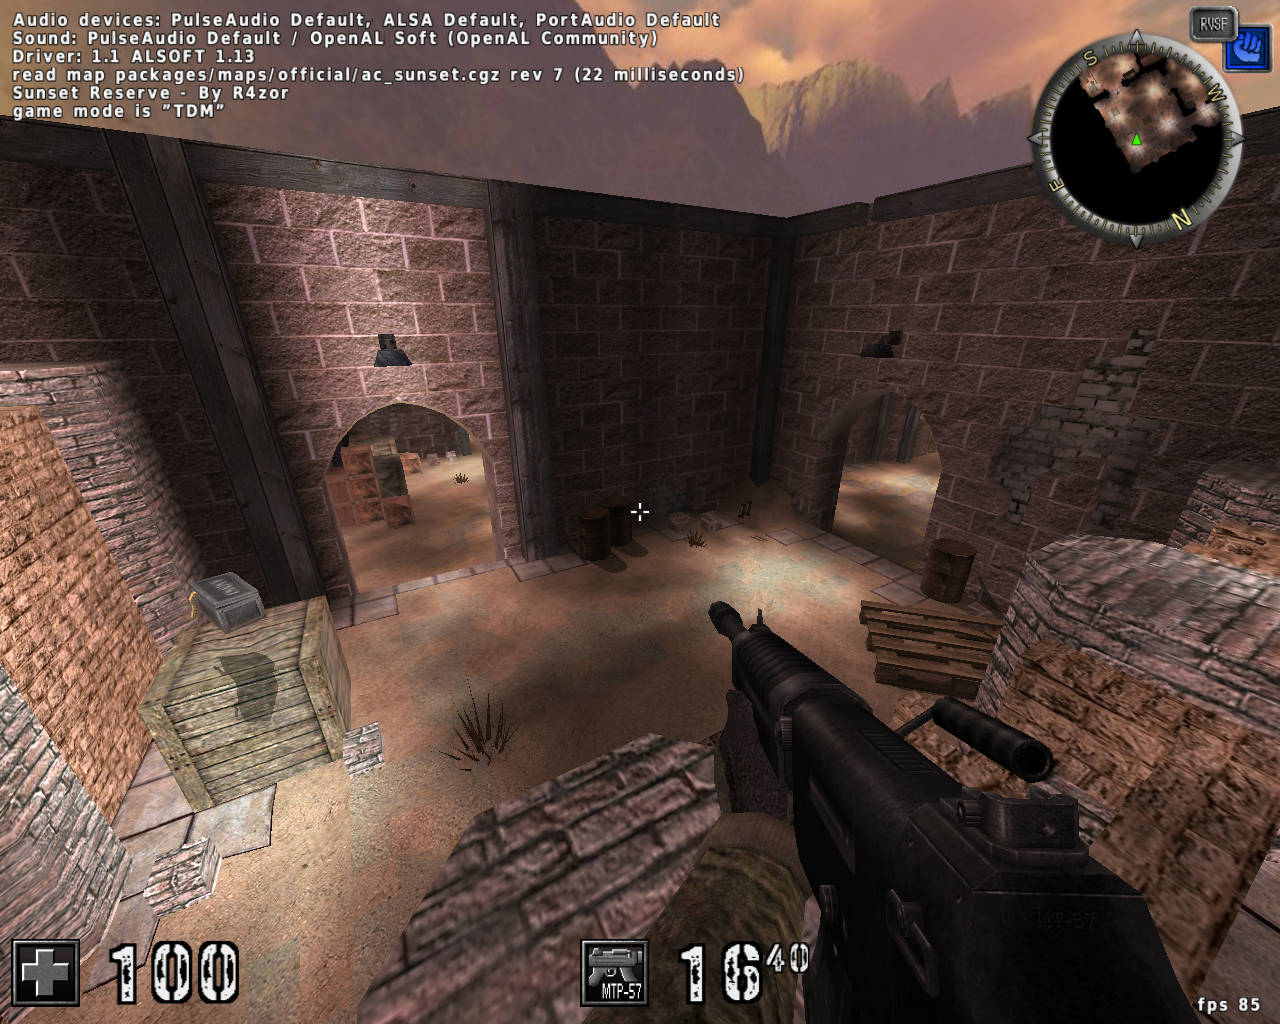 6 great free open source games to fetch after installing ubuntu neverball is a 3d action where you control a ball and you have to collect coins you can start with a beginner level and advance to more advanced levels gumiabroncs Choice Image